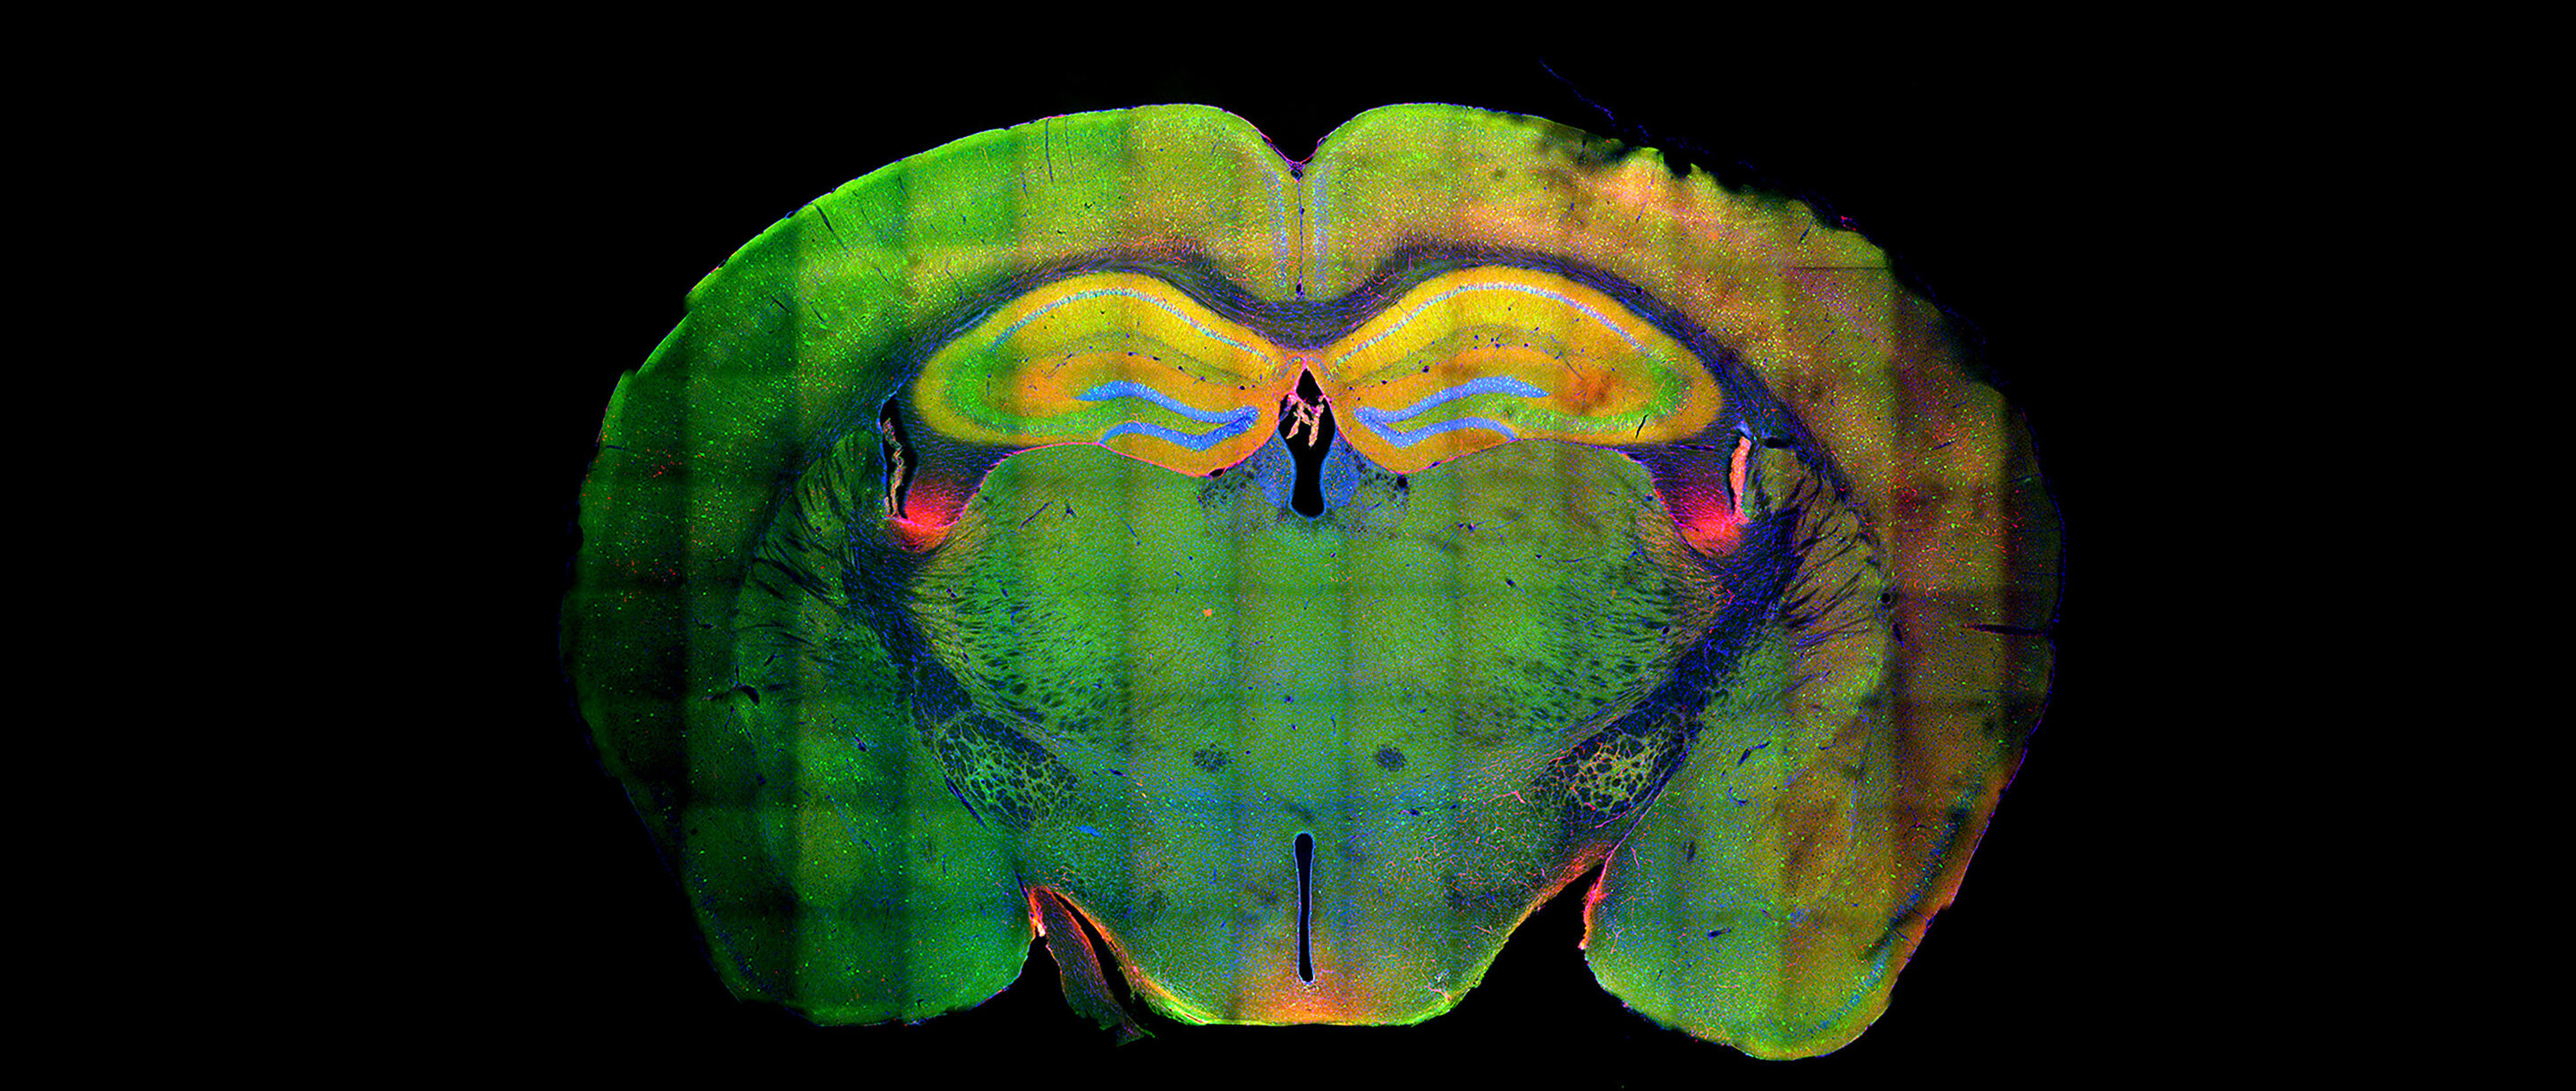 Fluorescent cross-section of a mouse's brain.